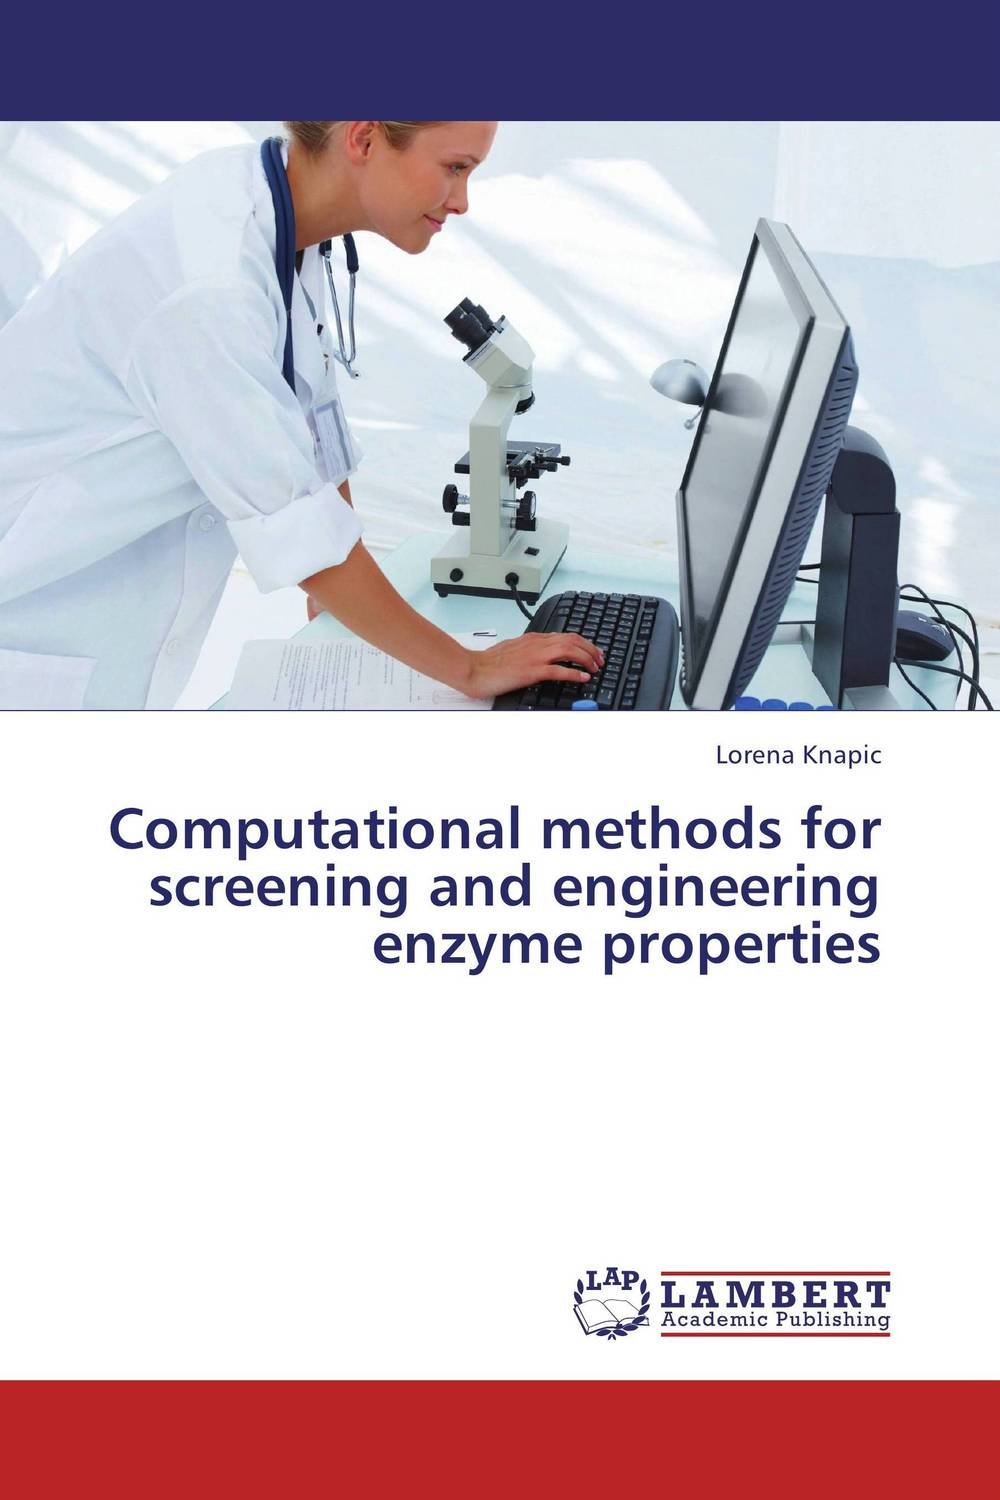 Computational methods for screening and engineering enzyme properties development of a computational interface for small hydropower plant